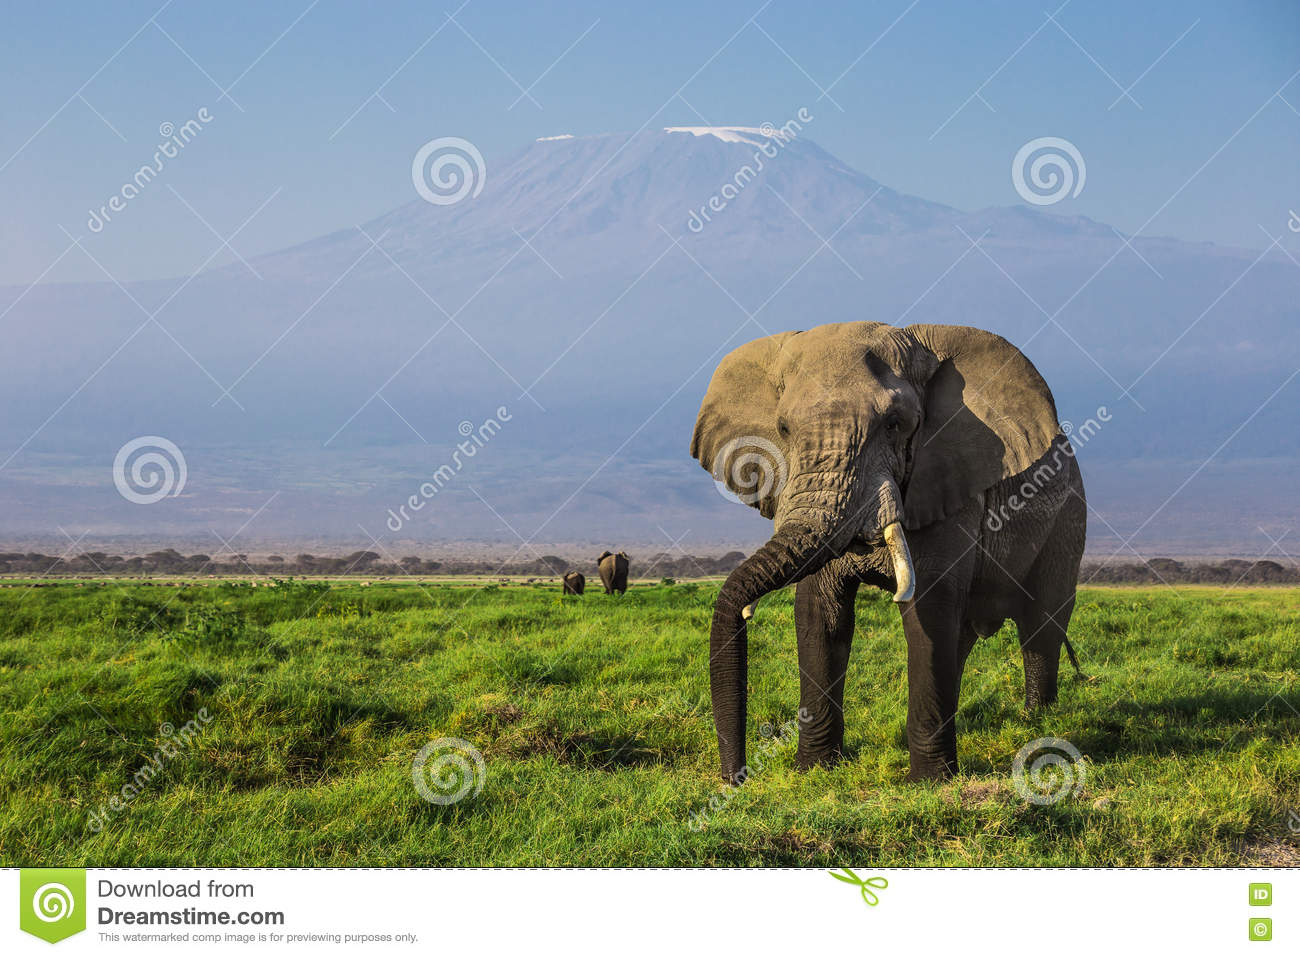 Big male African elephant with the mount Kilimanjaro in the background in the Amboseli national park (Kenya)